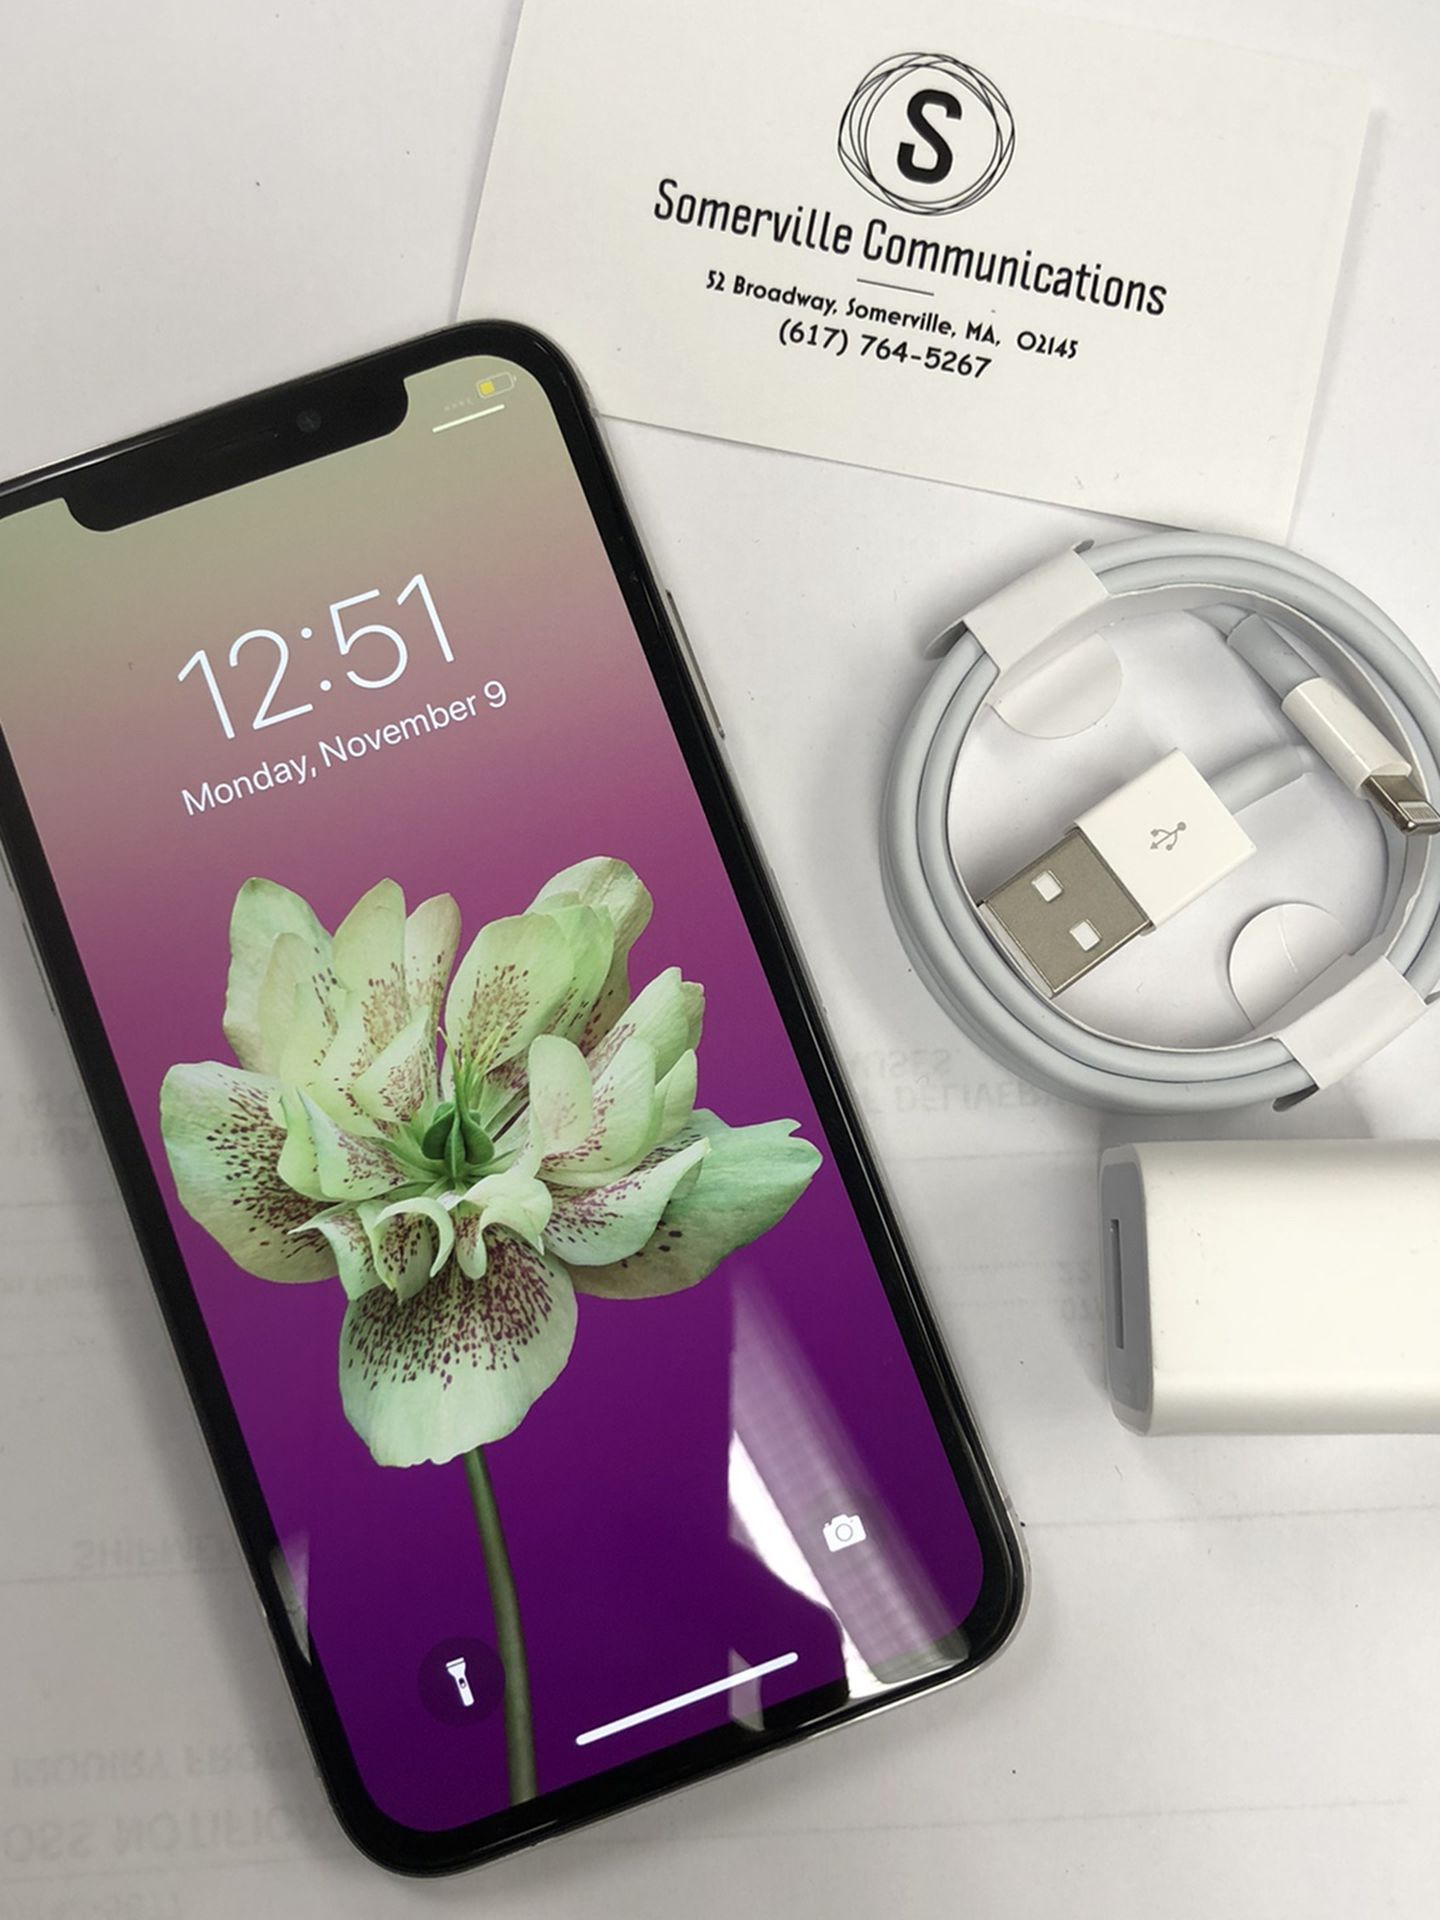 Factory unlocked iPhone x 64 gb, excellent conditions store warranty